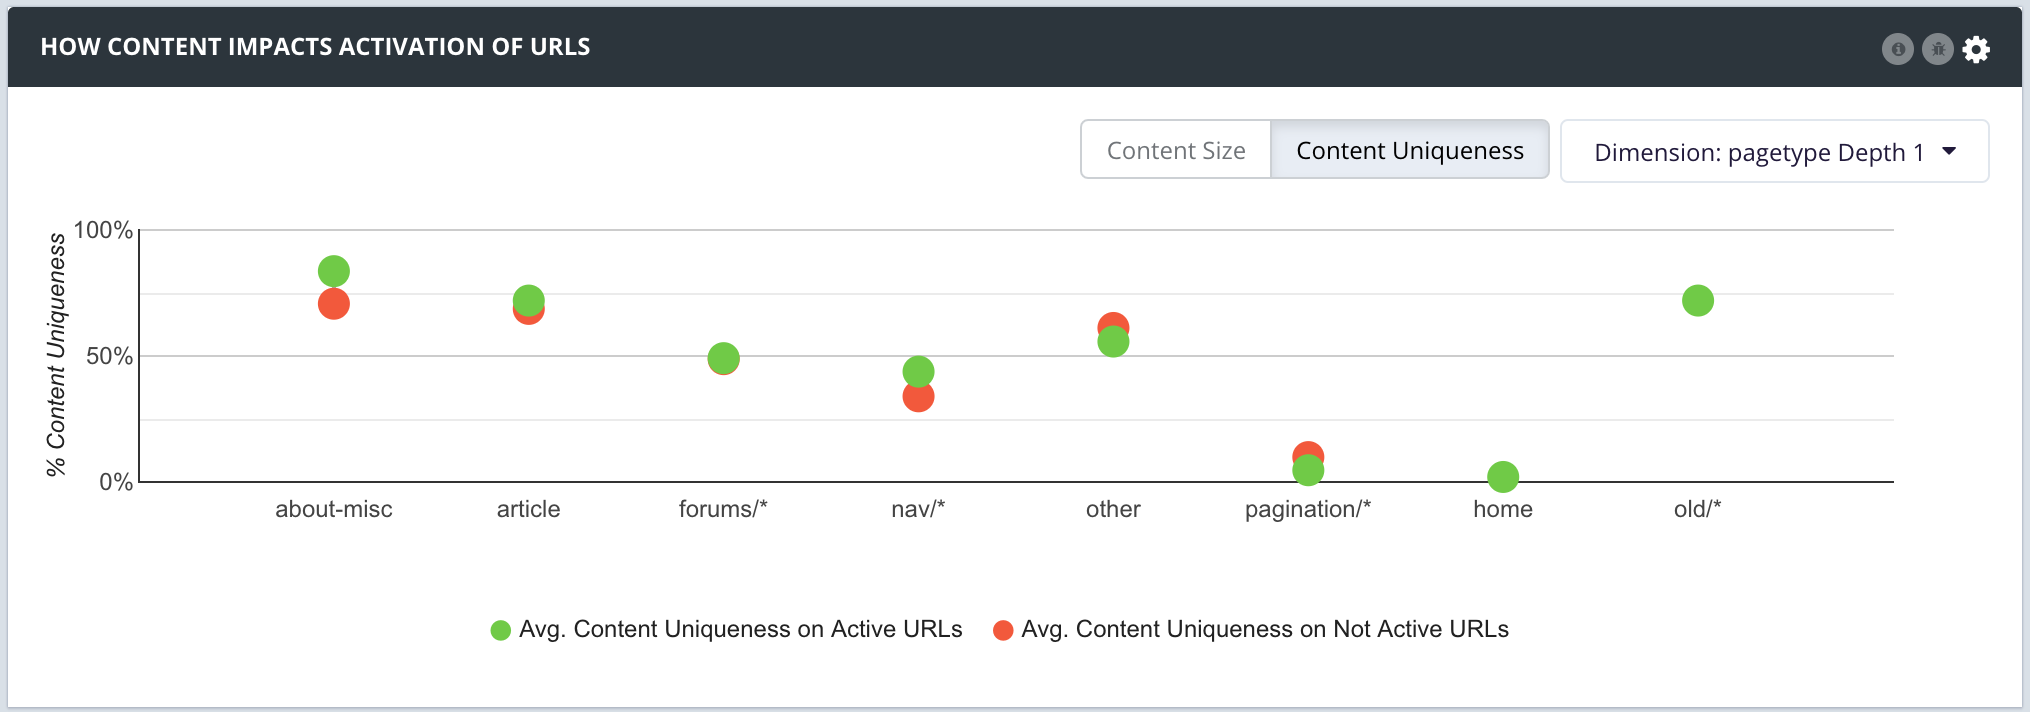 How content Impacts Activation of URLs v2